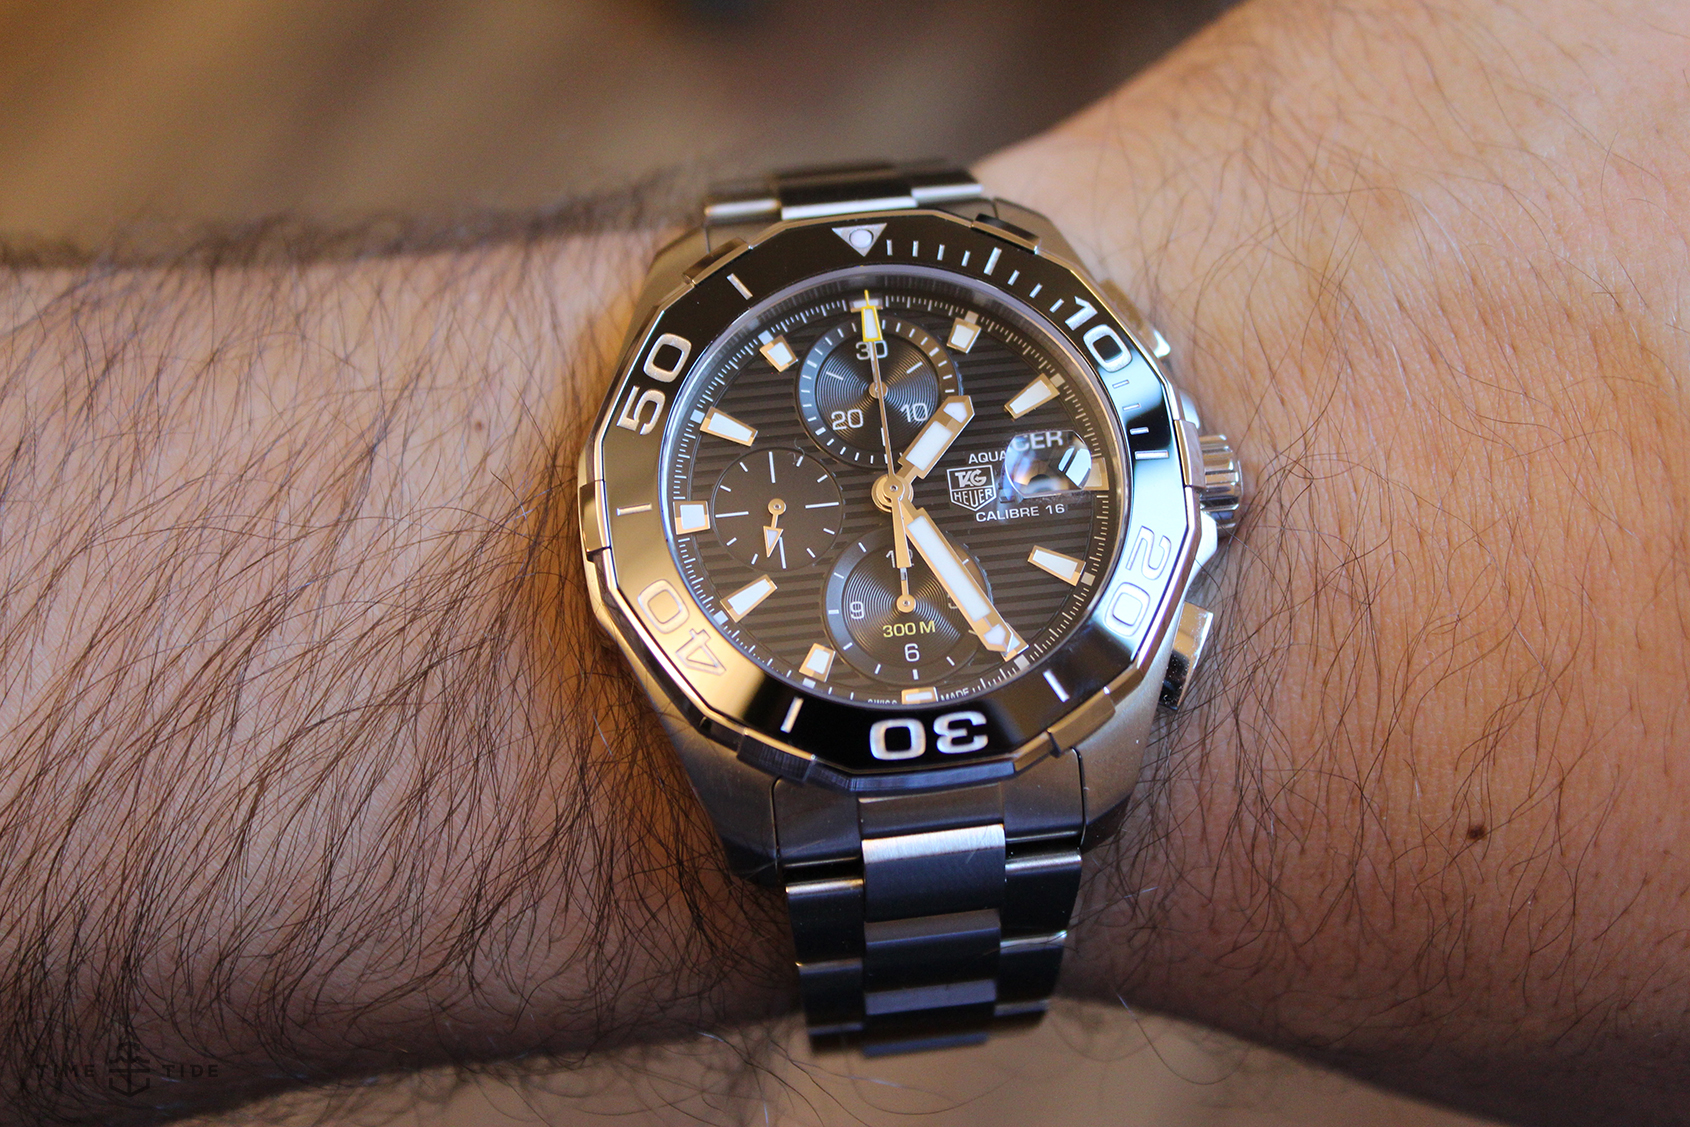 Tag: TAG Heuer Aquaracer 300 Calibre 16 Chronograph Review